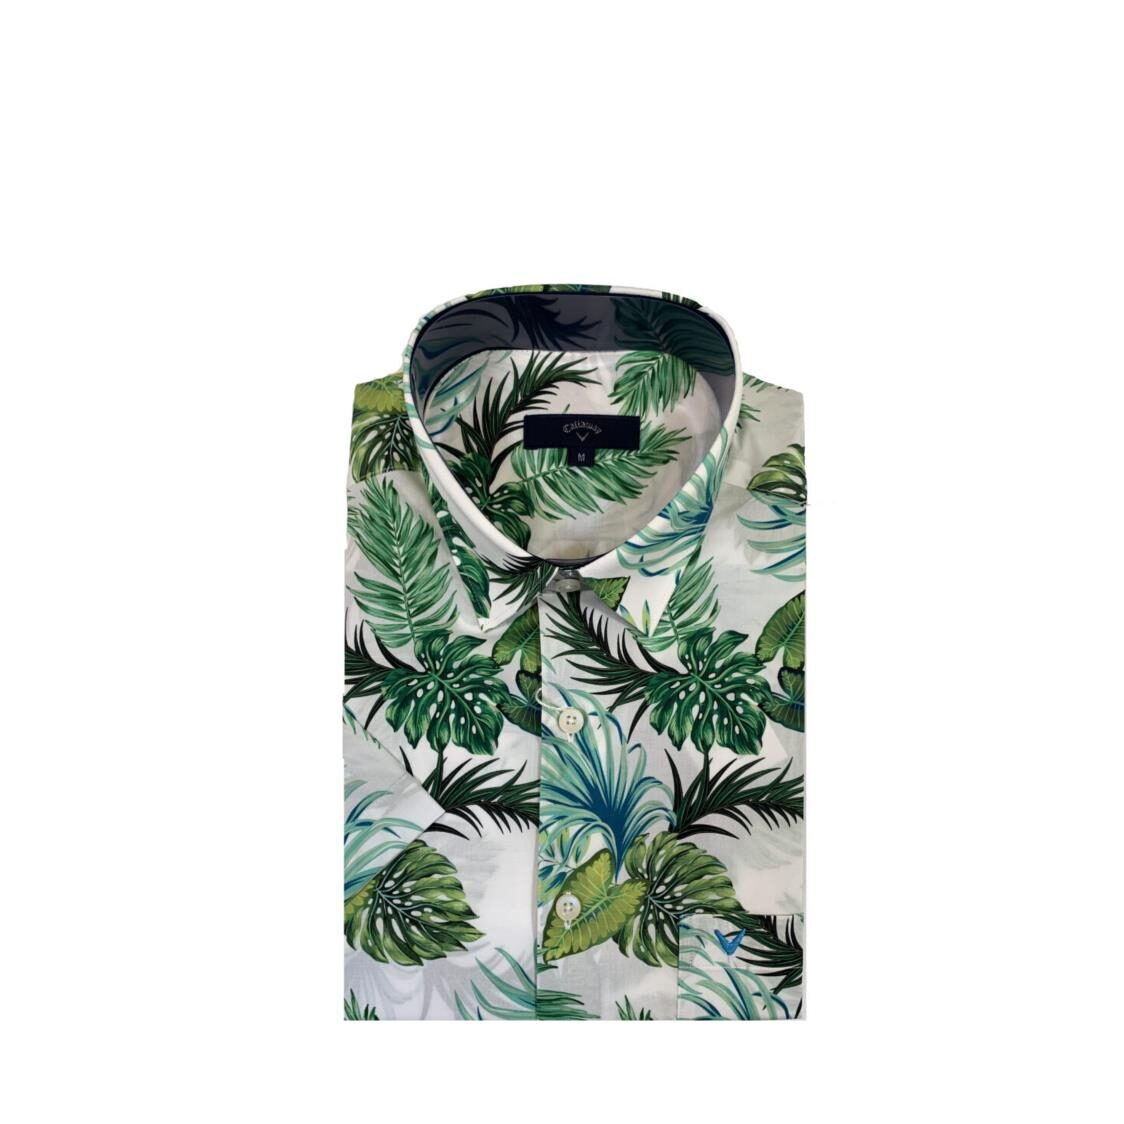 Callaway Short Sleeved Woven Shirt With Digital Prints COW6006 NGREEN